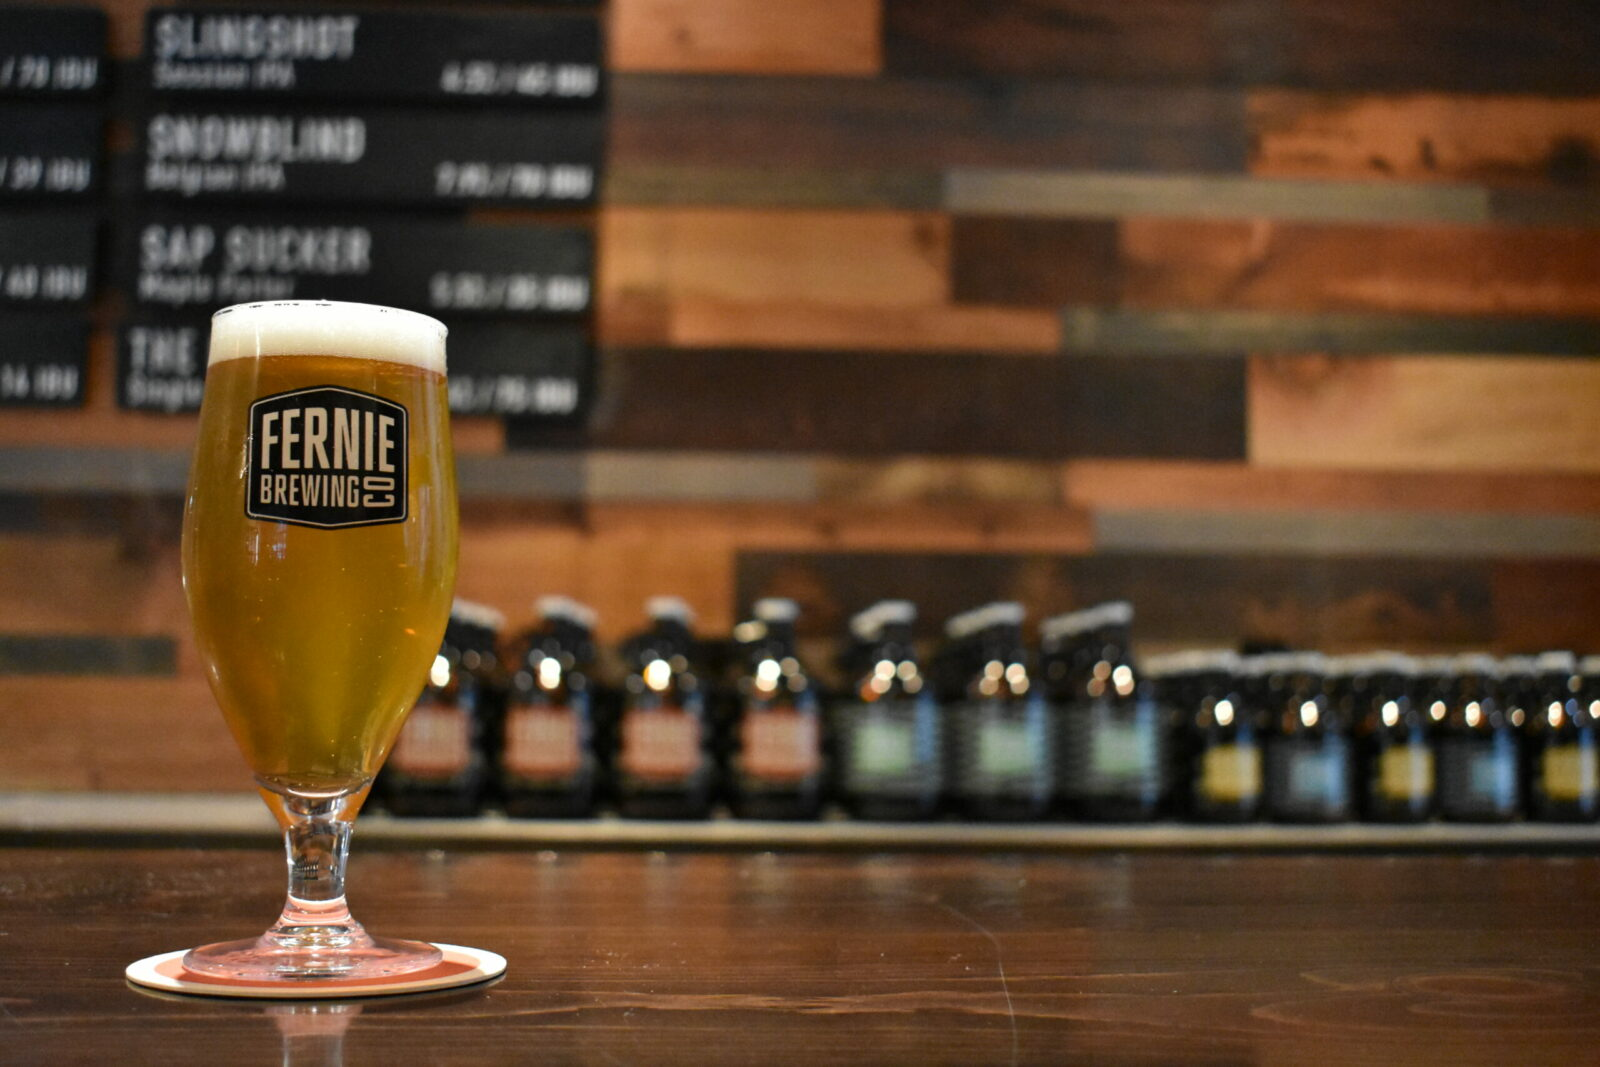 A 12oz glass of beer in the Fernie Brewing Co. Tasting Room.